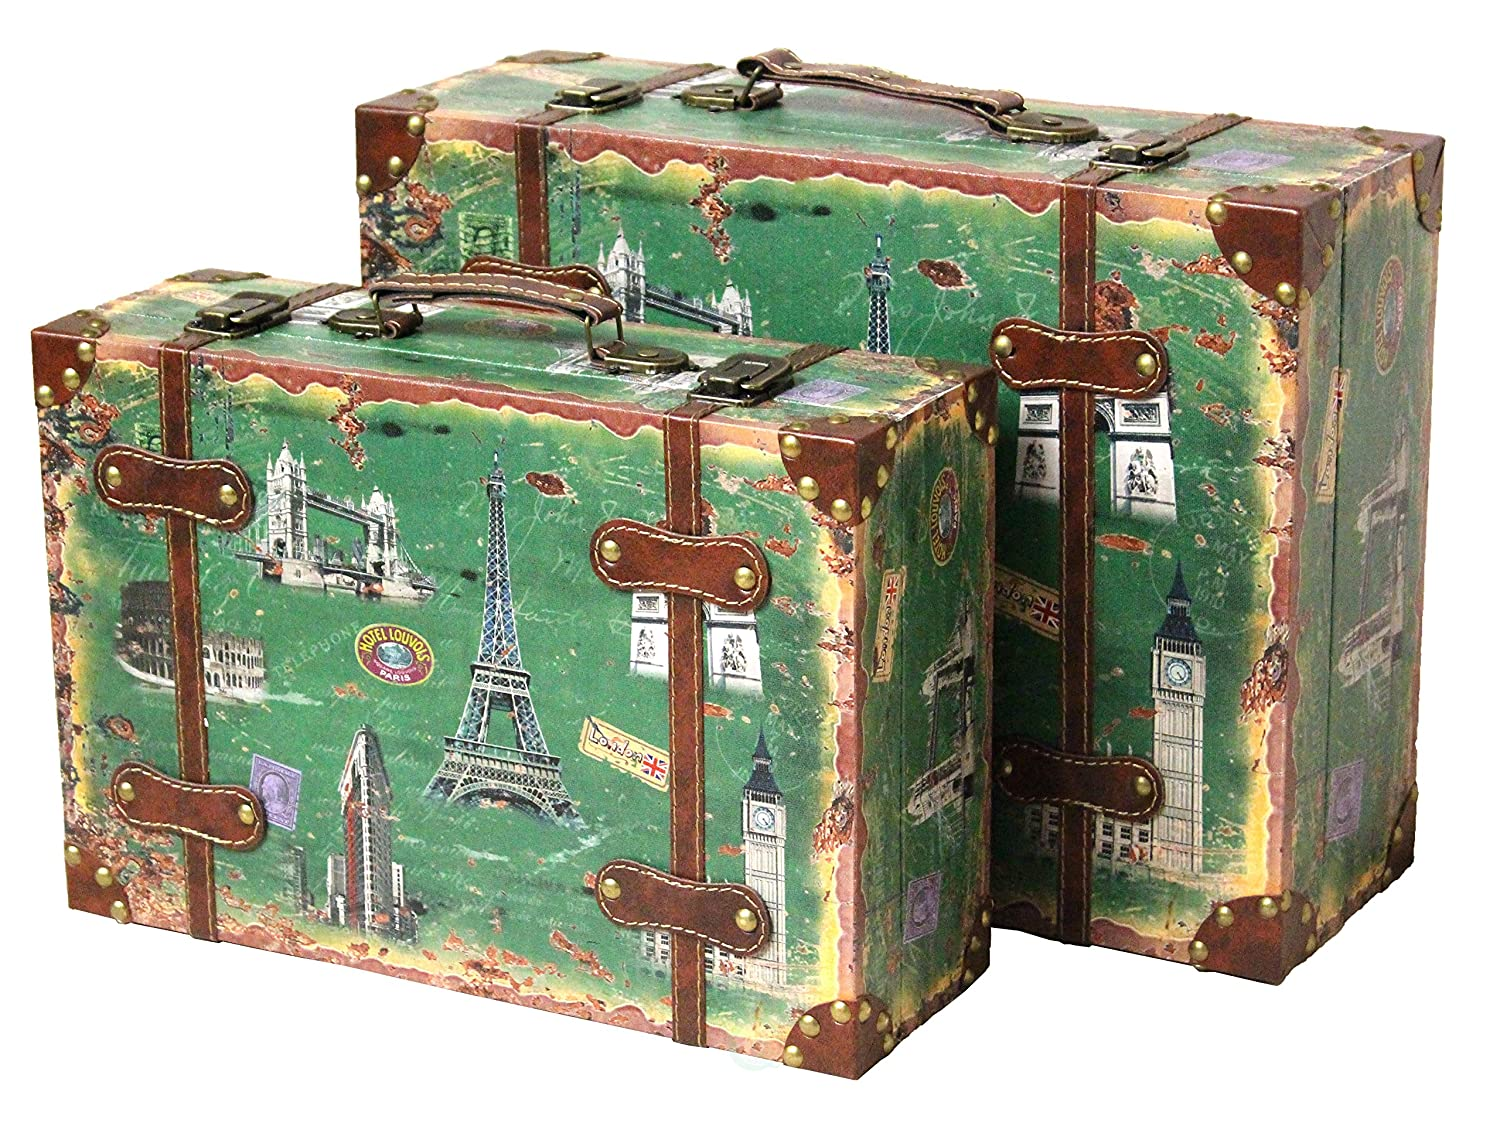 Amazon.com: Vintiquewise(TM) Vintage Style European Luggage Suitcase, Set of 2: Home & Kitchen